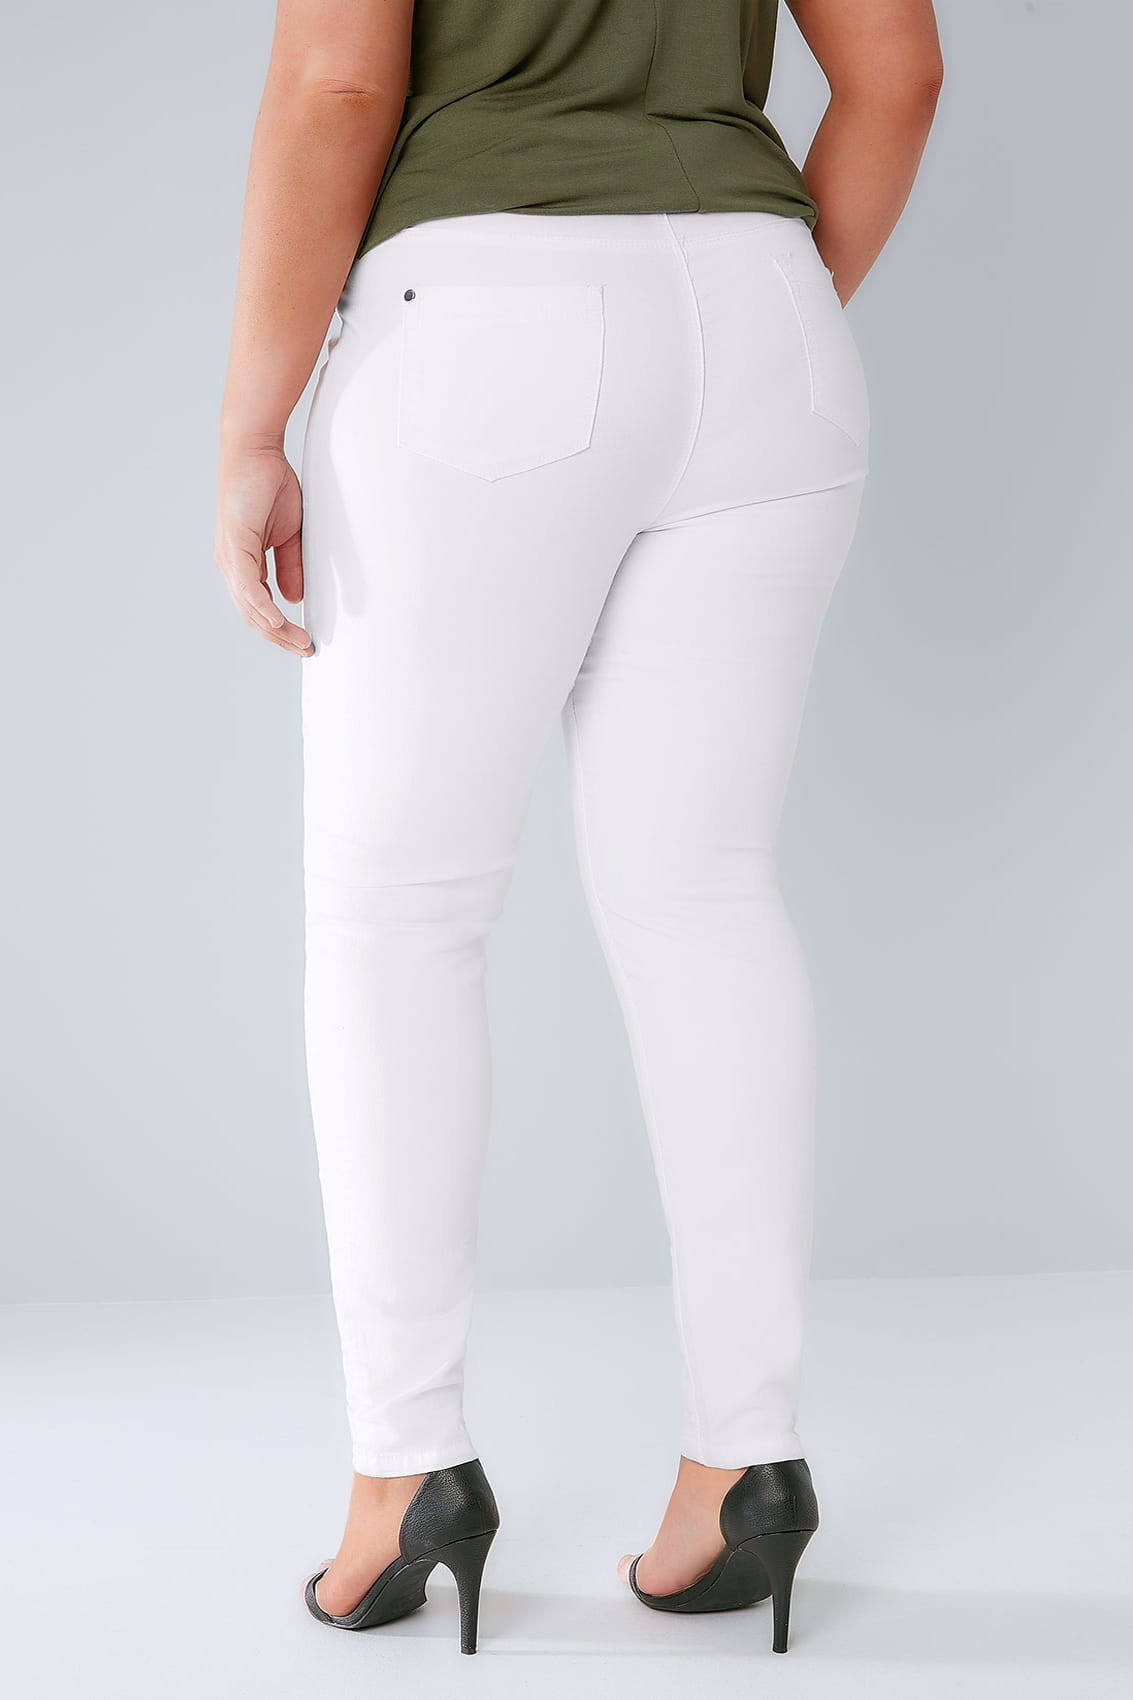 Shop Slimming Stretch Jegging in White and discover comfortable and stylish women's pants and trousers at an affordable price today. Order online or call: